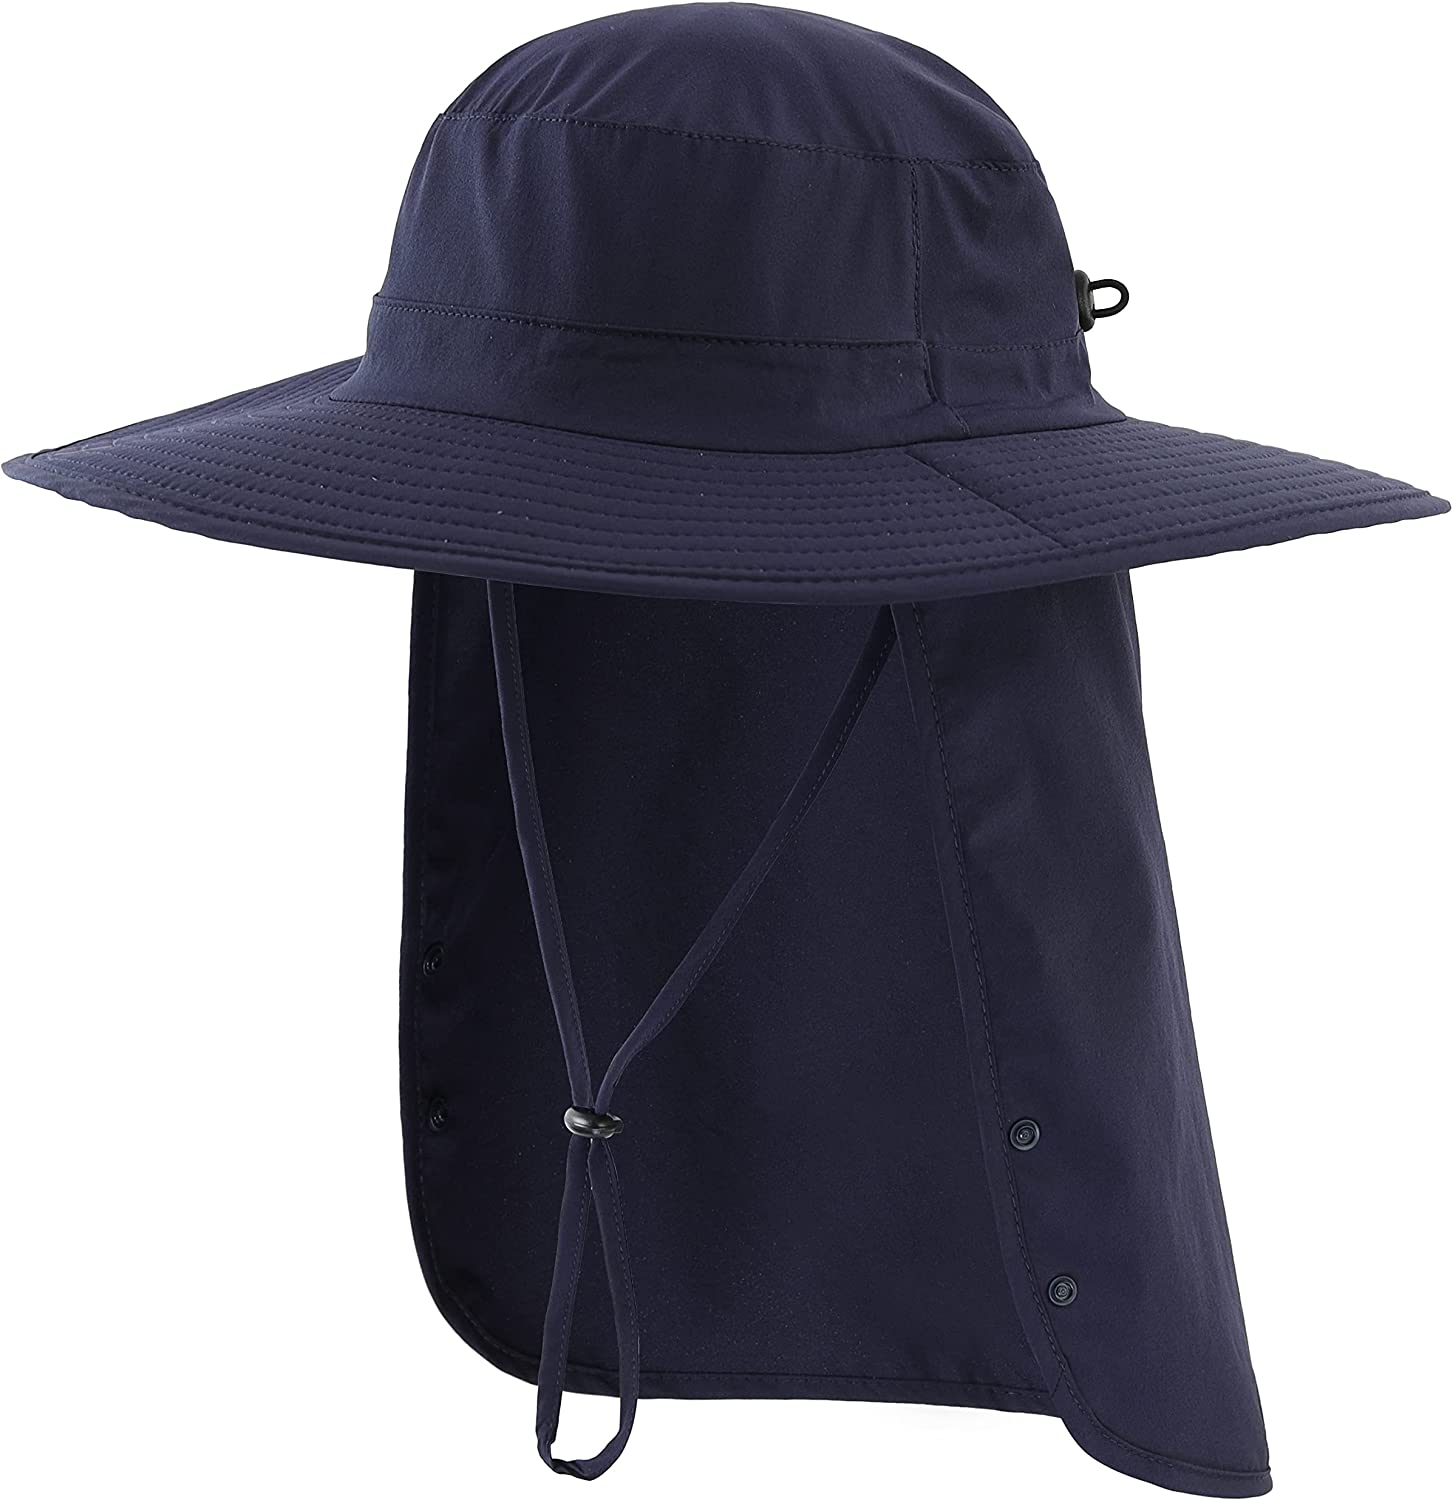 Connectyle Mens UPF 50+ Sun Protection with Flap Hat Neck Safari Latest item Ranking TOP11